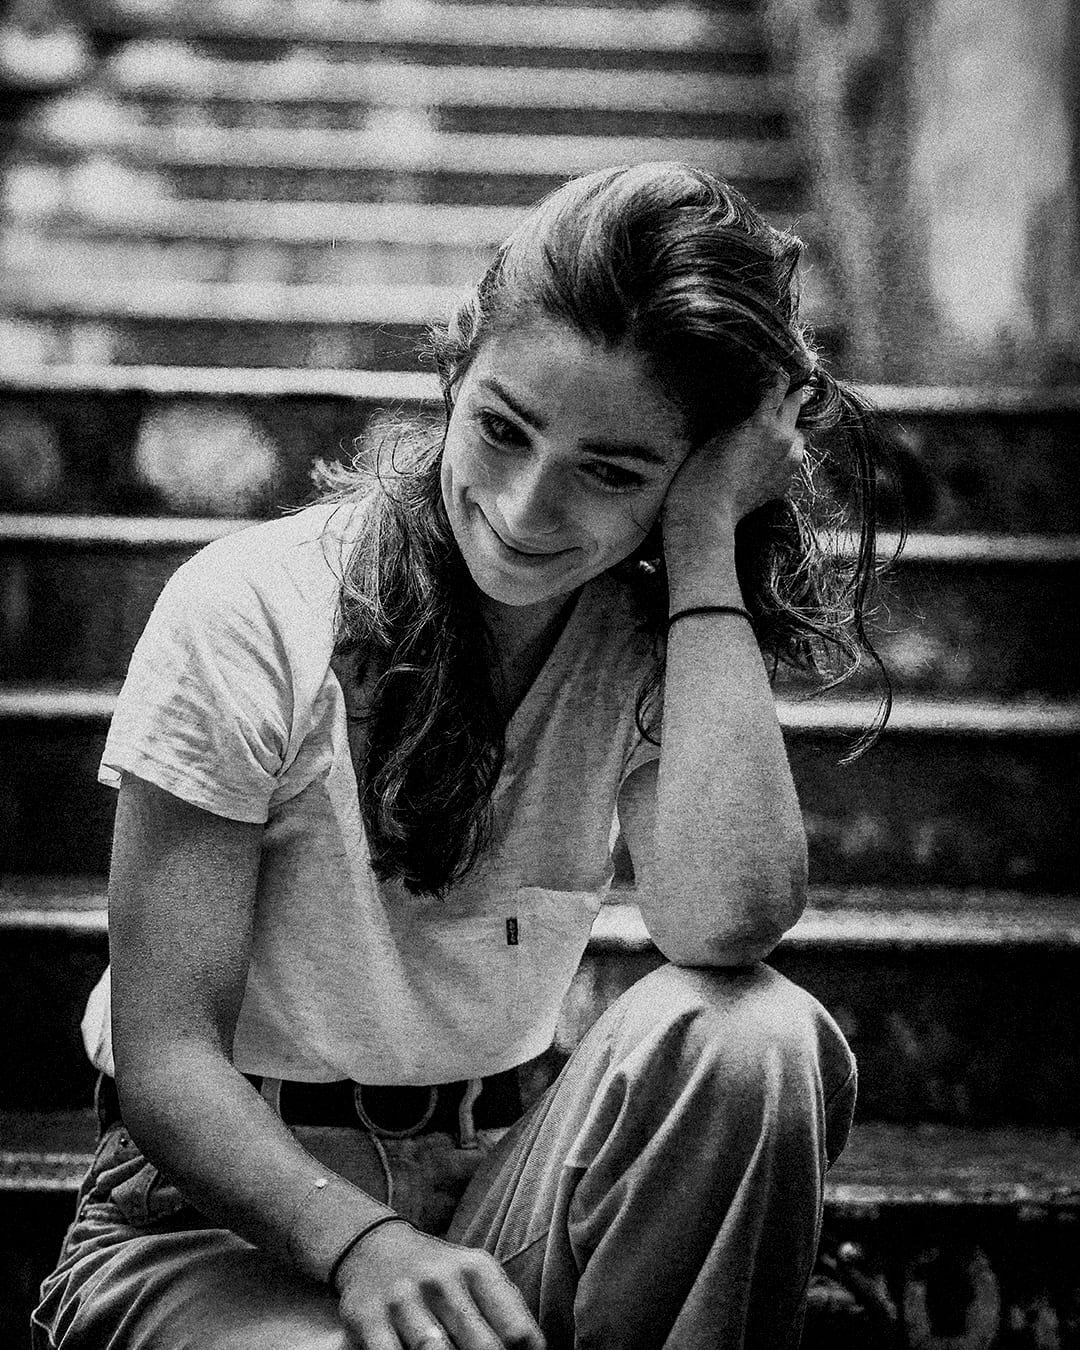 A black and white photo of a woman sitting on a step smiling